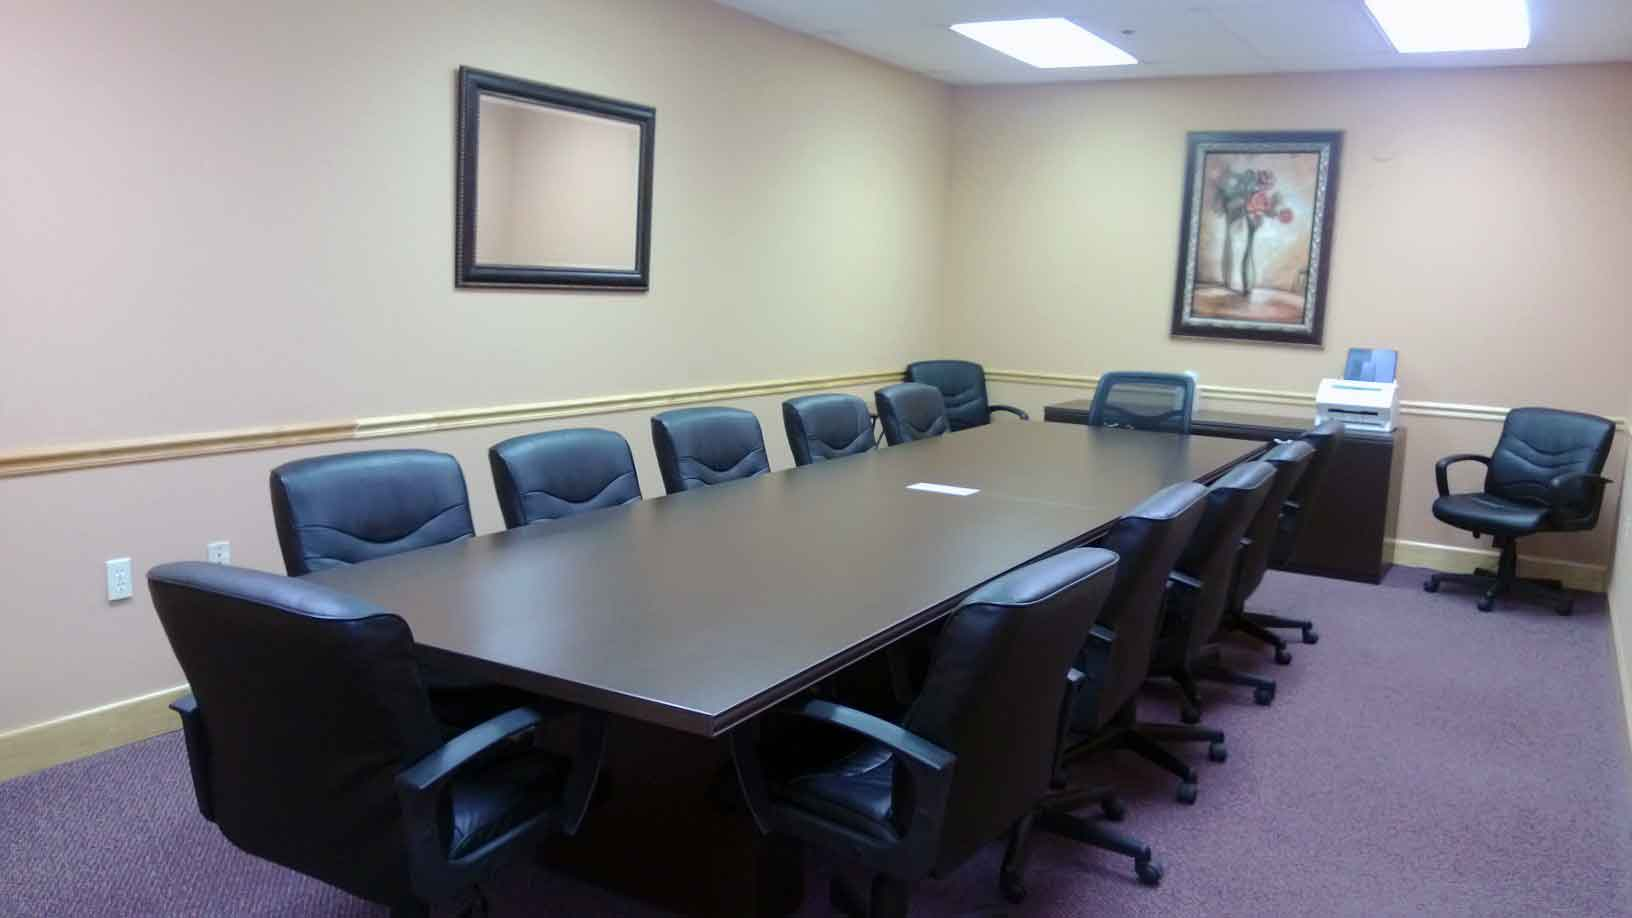 furnitureconference room pictures meetings office meeting. Furnitureconference Room Pictures Meetings Office Meeting